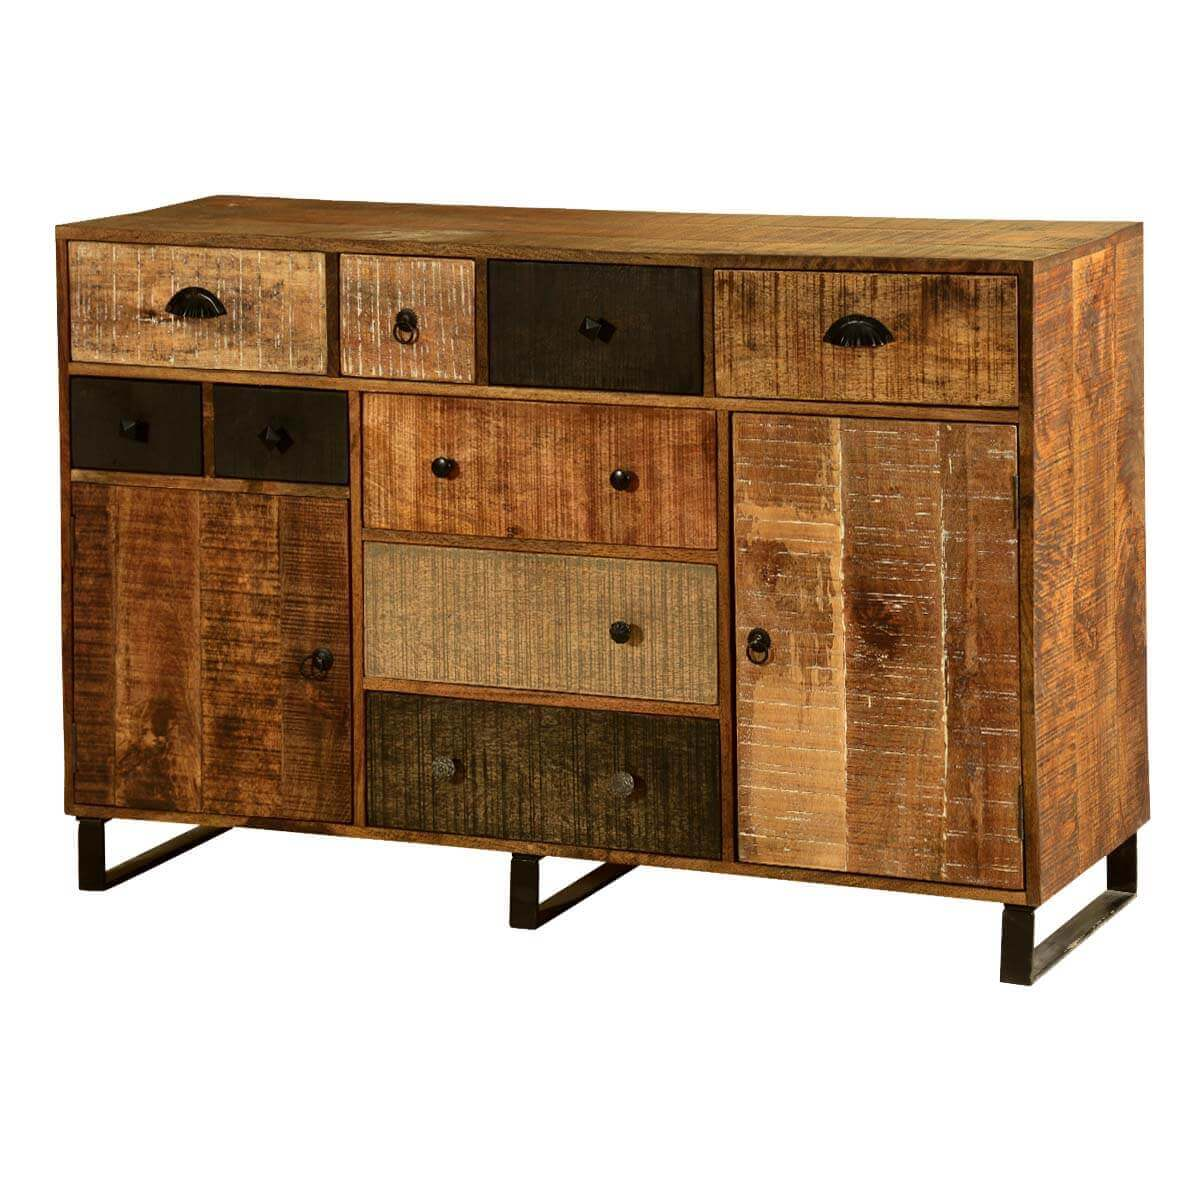 Coalton Wooden Patches Mango Wood Industrial Rustic Buffet Cabinet